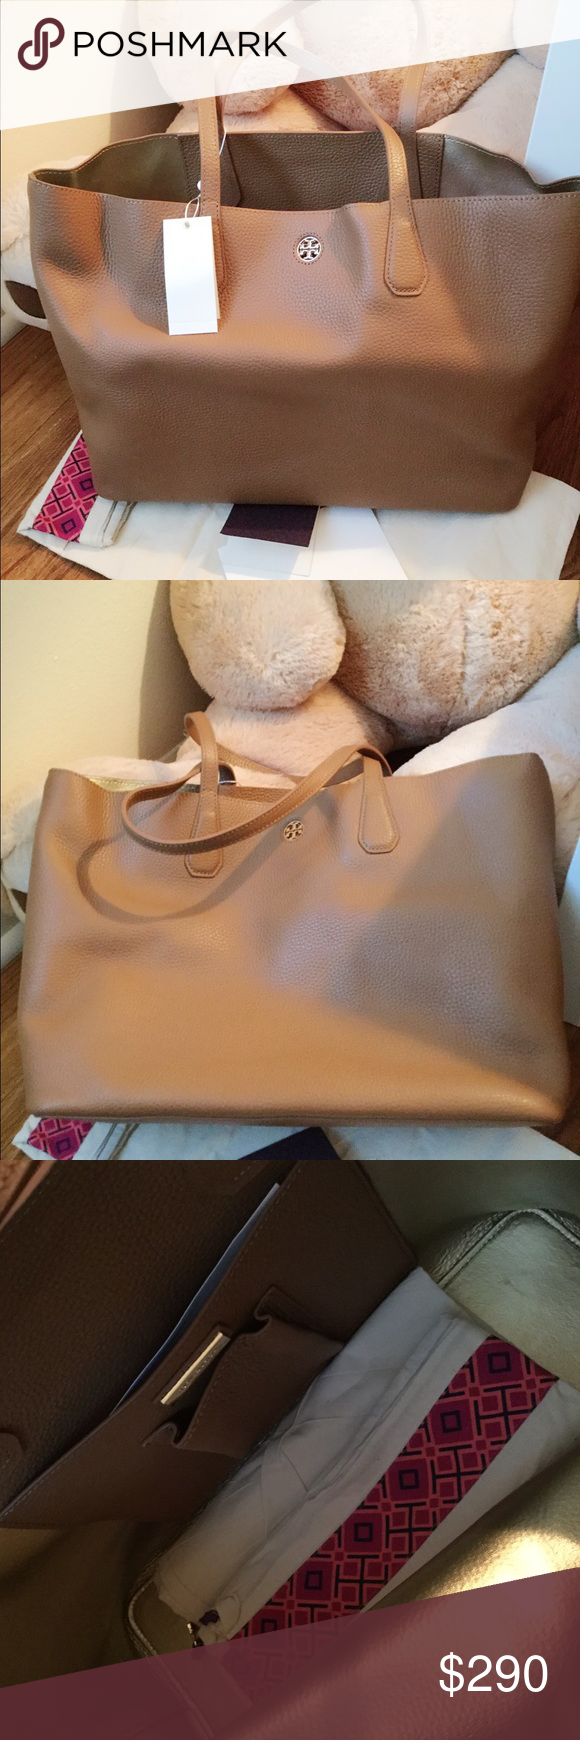 """Tory burch perry tote DETAILS & FIT Holds a 15"""" laptop, a pair of flats, a sweater, a continental wallet, a notebook, an agenda, sunglasses, an iPhone 6 Plus and a fragrance rollerball Pebbled leather with resin backing Open tote Flat handles with 9.4"""" (24 cm) drop 1 interior hanging pocket with 2 open pockets Height: 11.3"""" (28.5 cm) Length: 14.7"""" (37 cm) Depth: 5.9"""" (15 cm) Tory Burch Bags Totes"""